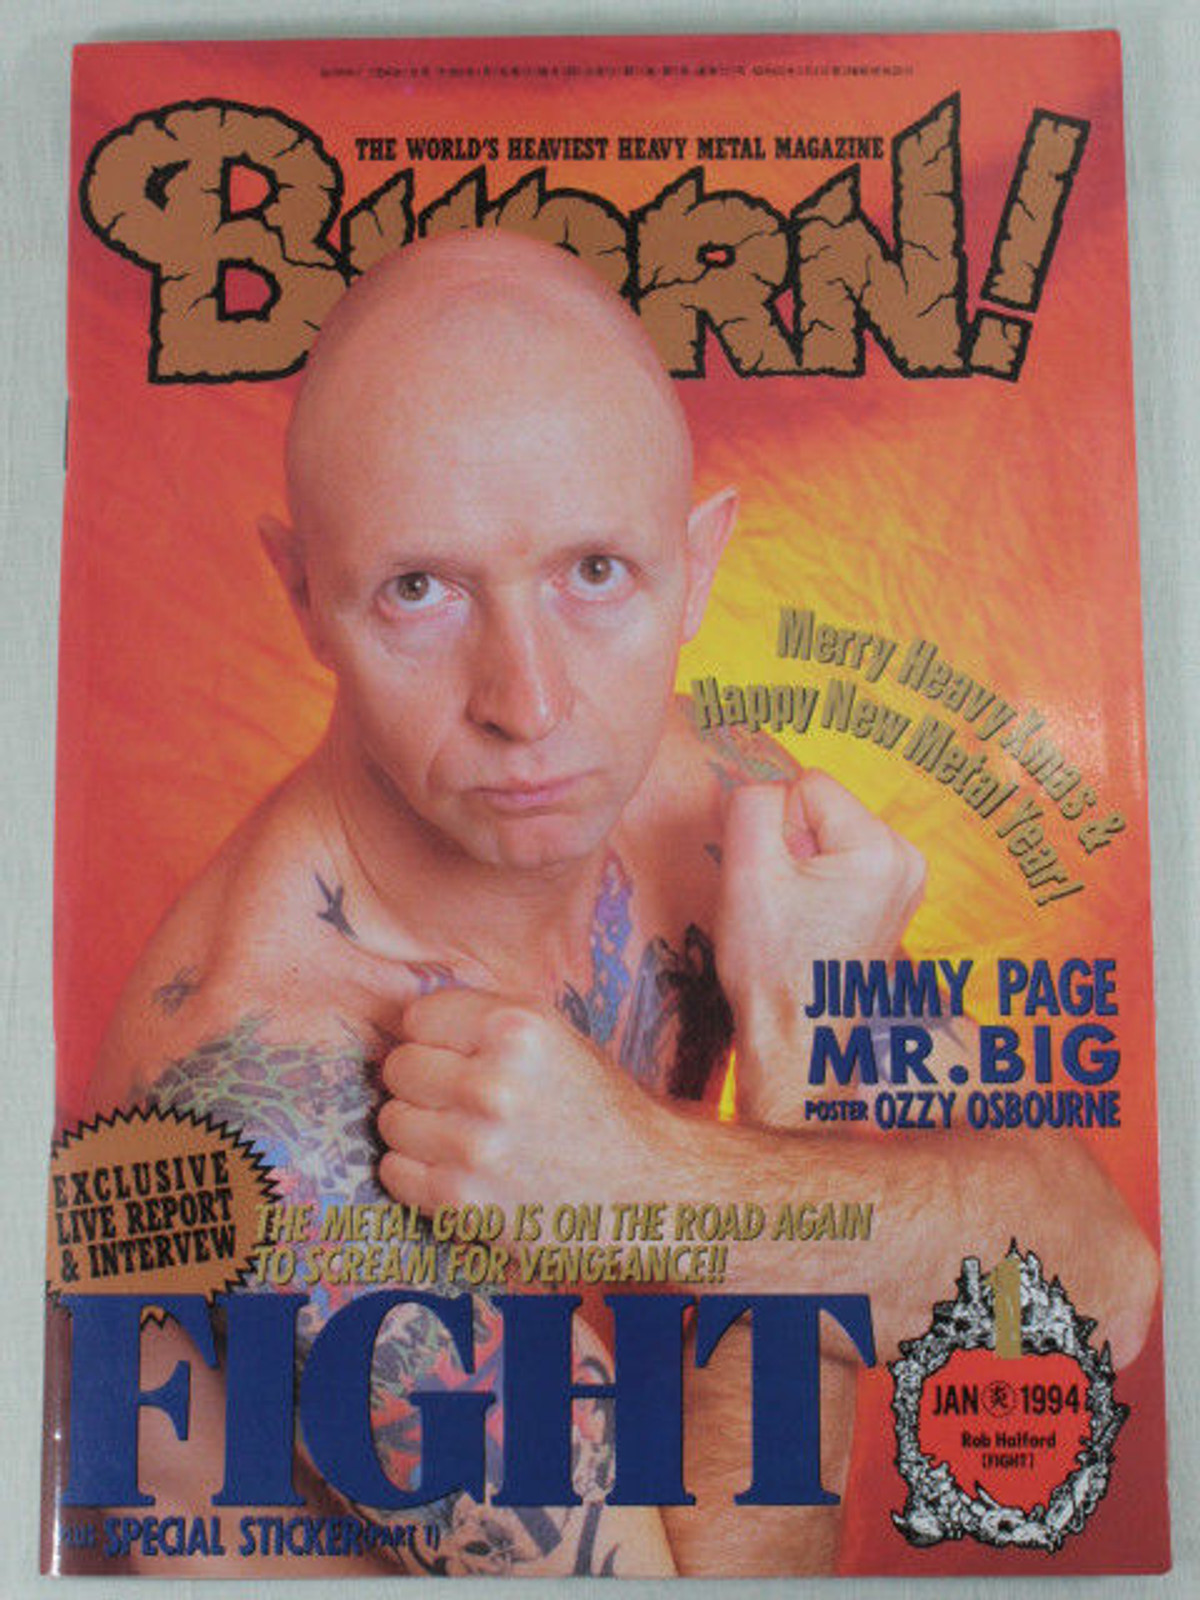 1994/01 BURRN! Japan Rock Magazine FIGHT/JIMMYPAGE/MR.BIG/RUSH/VAIN/W.A.S.P.